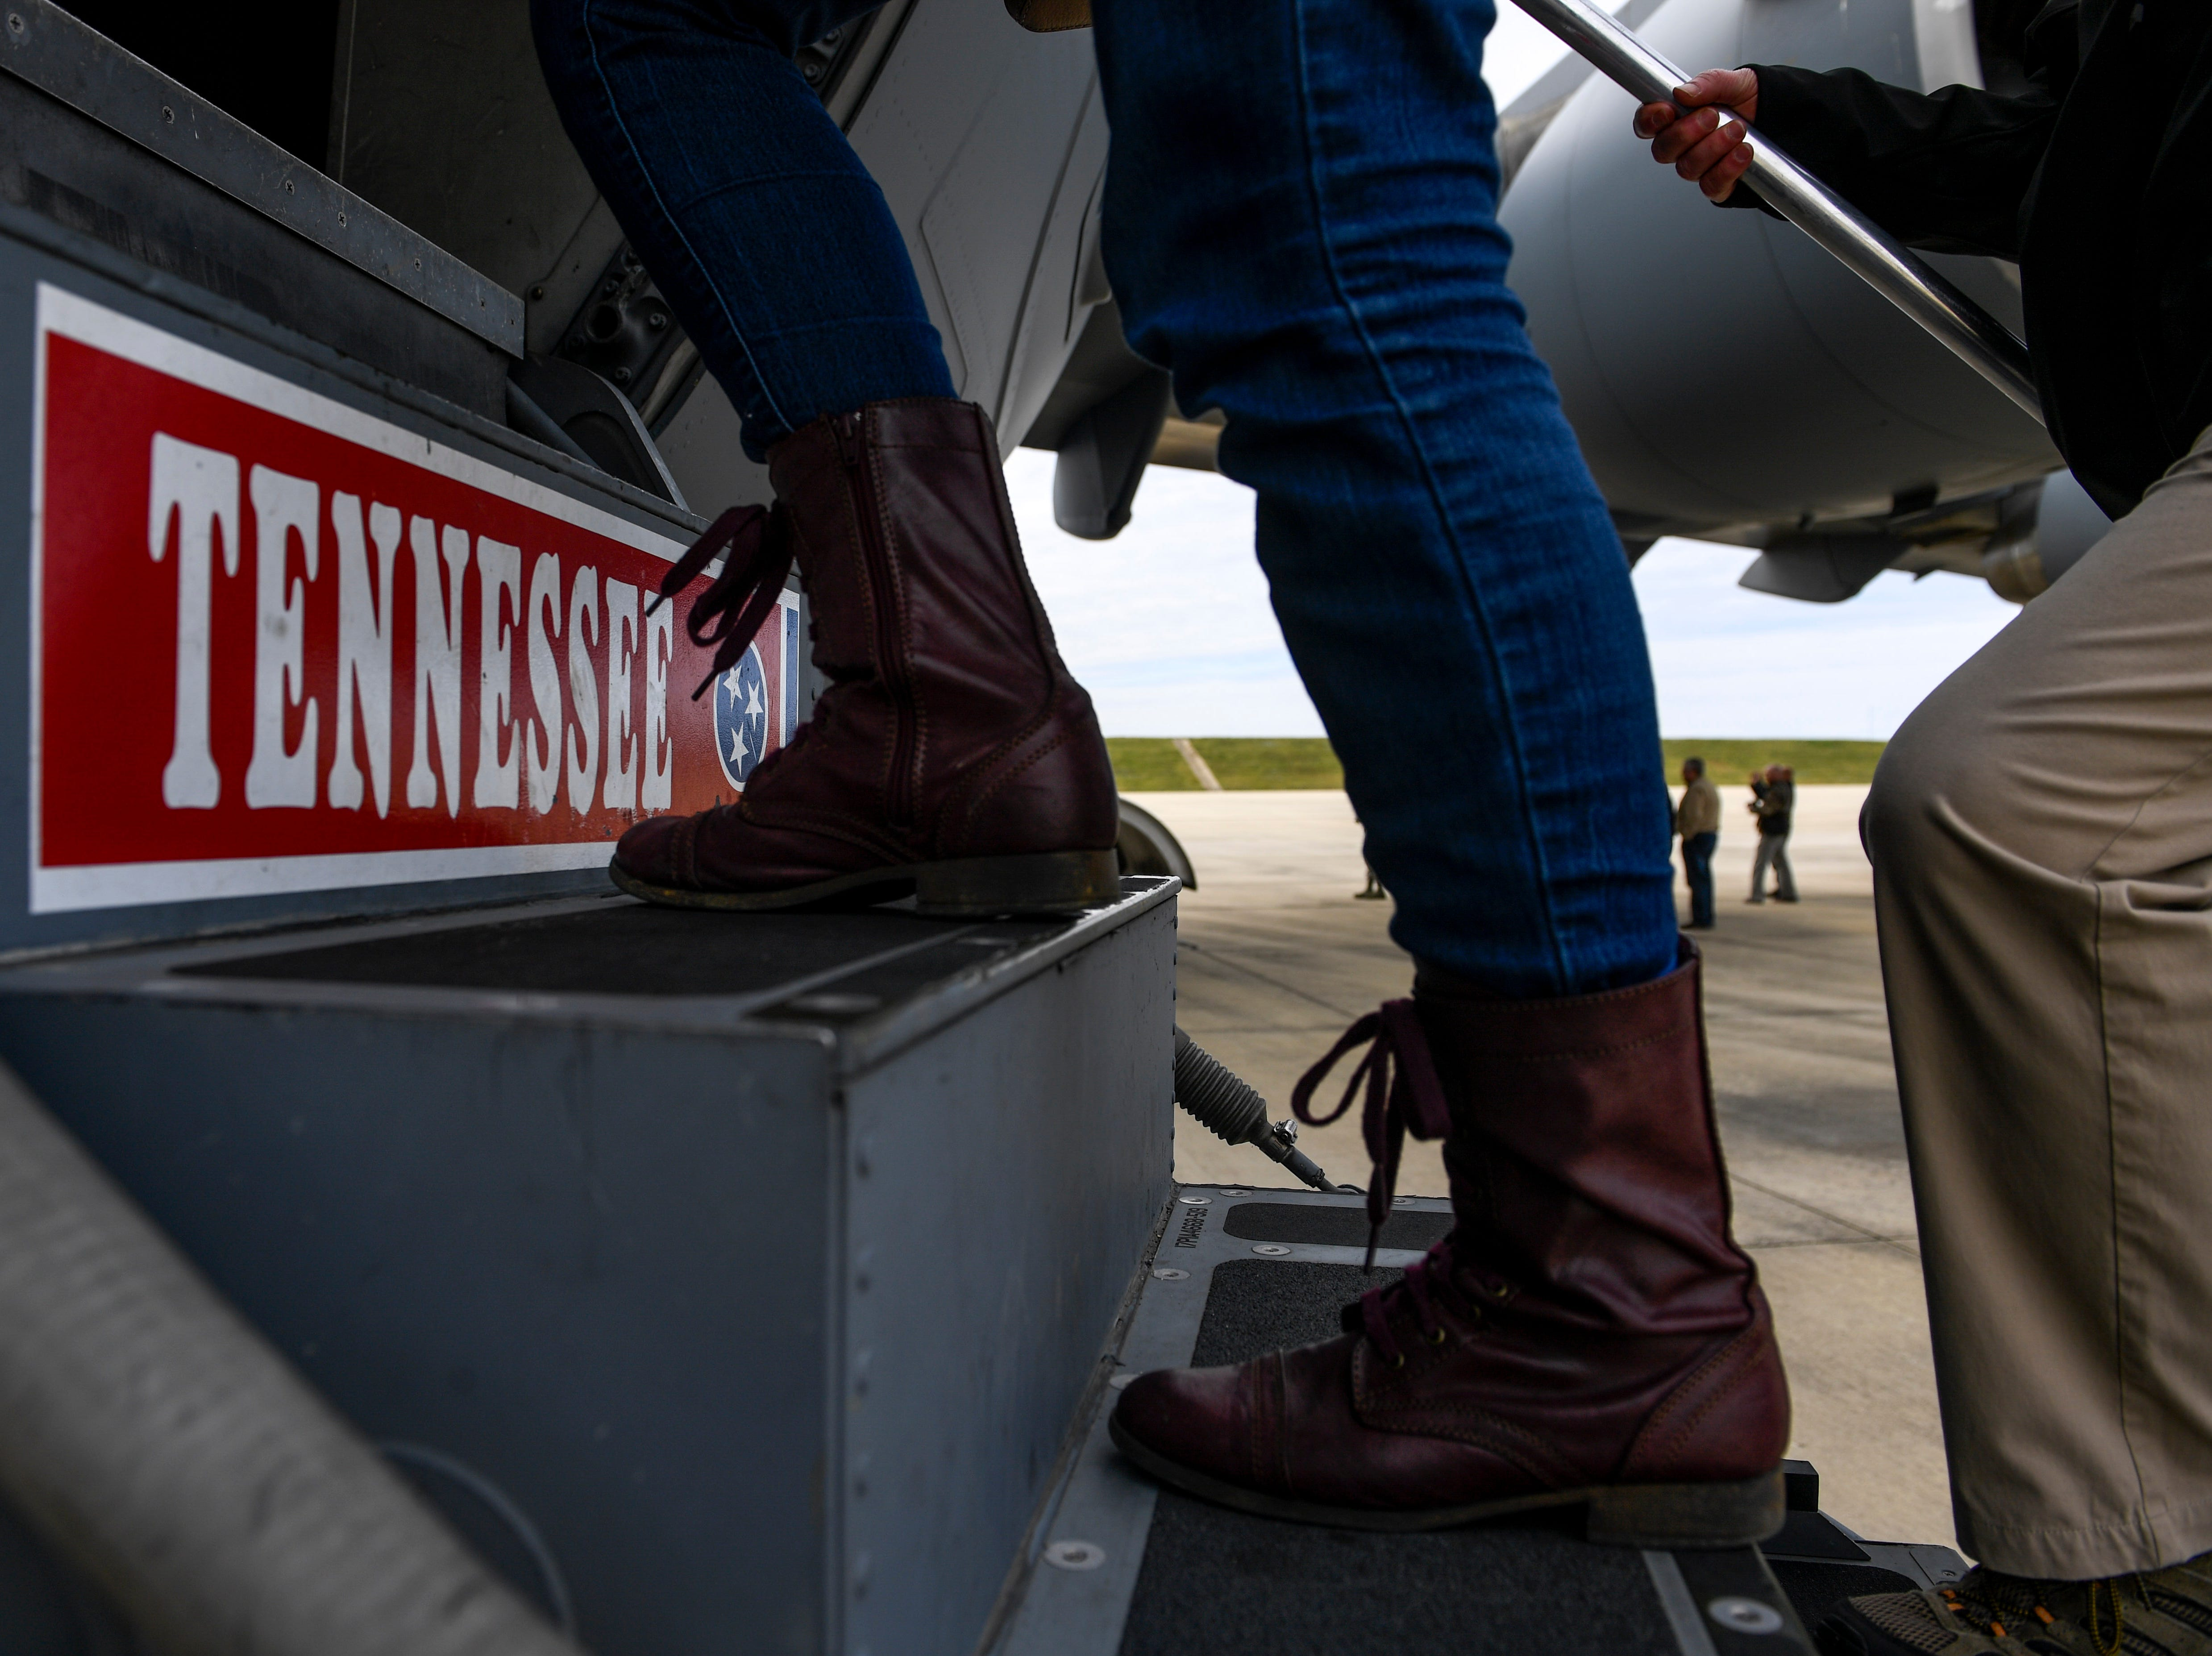 Attendees walk up steps to enter the C-17 during the annual Bosslift event put on by Employer Support of the Guard and Reserve (ESGR) and the Tennessee National Guard at 164th Airlift Wing in Memphis, Tenn., on Thursday, Nov. 8, 2018.